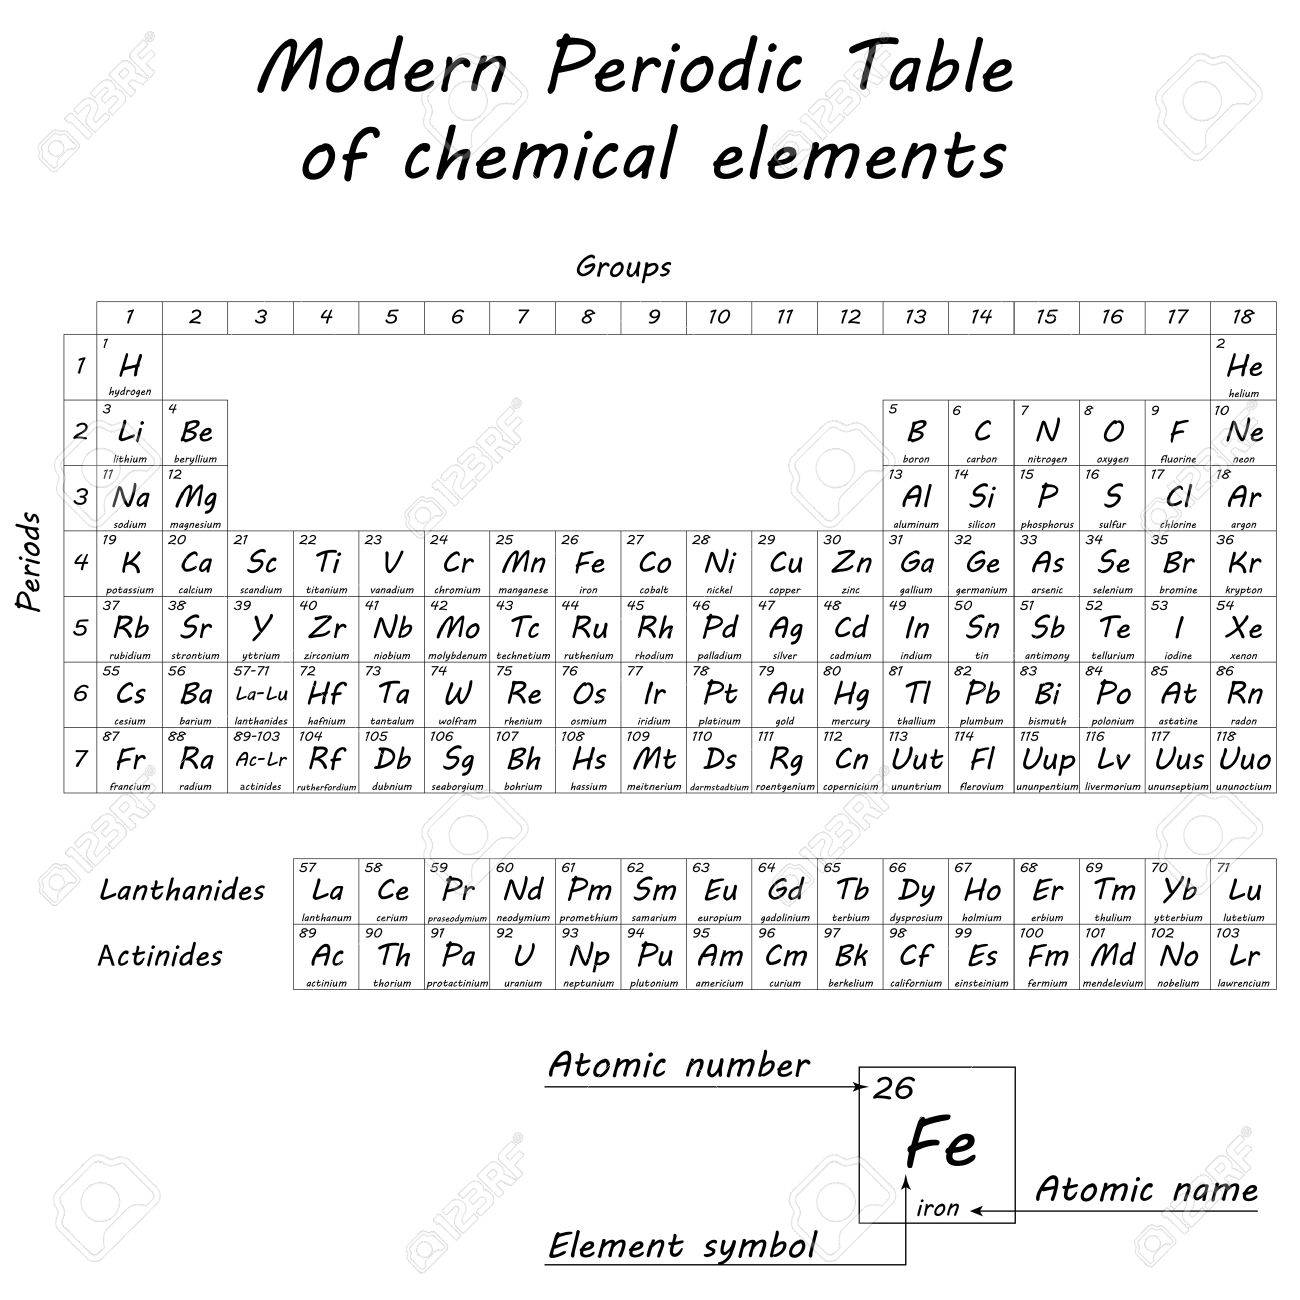 Dmitri mendeleev periodic table facts gallery periodic table images dmitri mendeleev periodic table facts gallery periodic table images dmitri mendeleev periodic table facts gallery periodic gamestrikefo Gallery